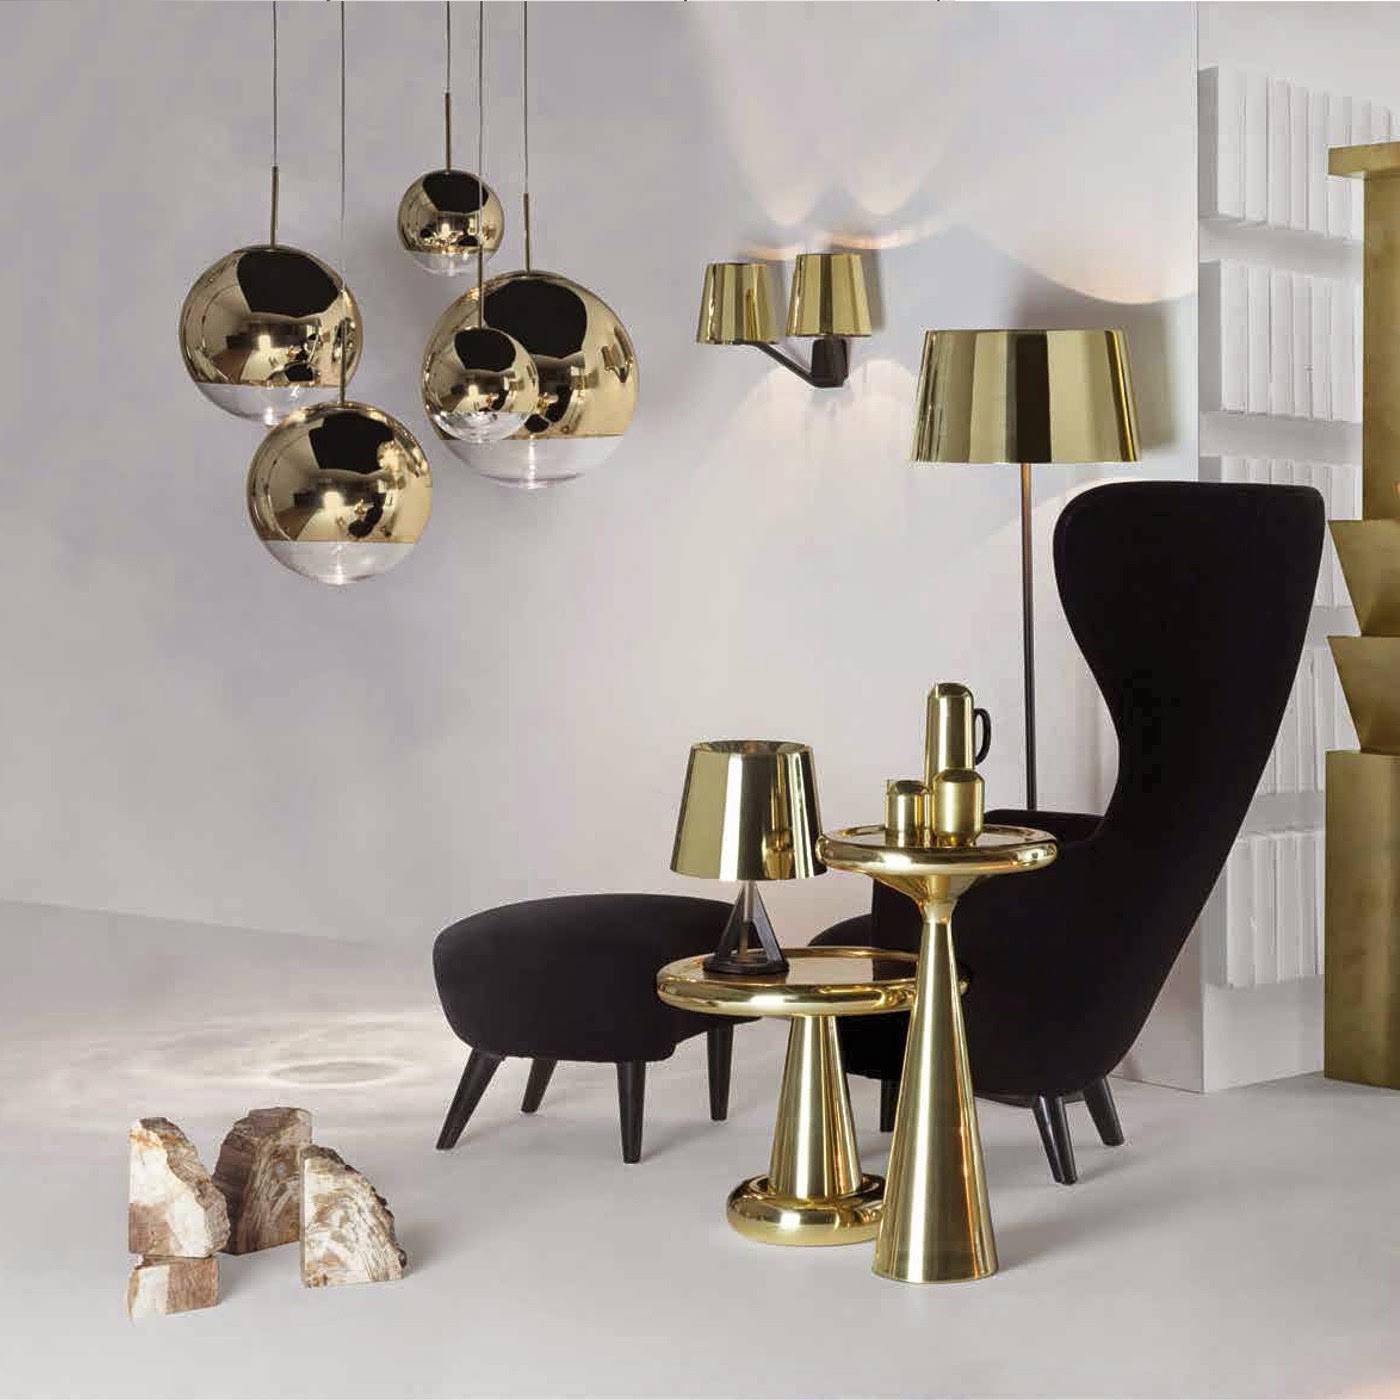 tom dixon mirror balls gold, base lights polised brass, spun, wingback